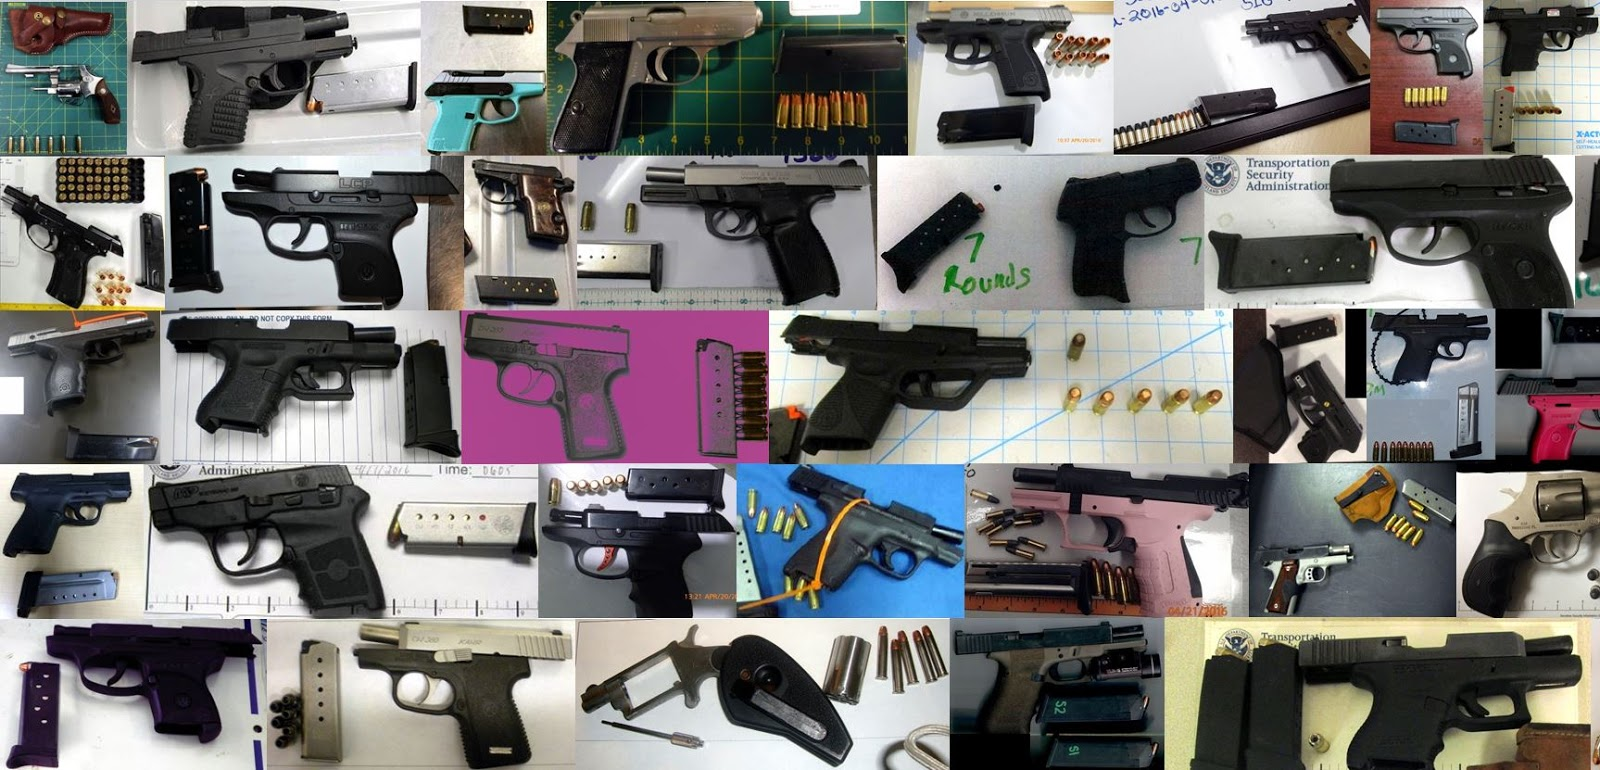 Discovered 73 firearms image